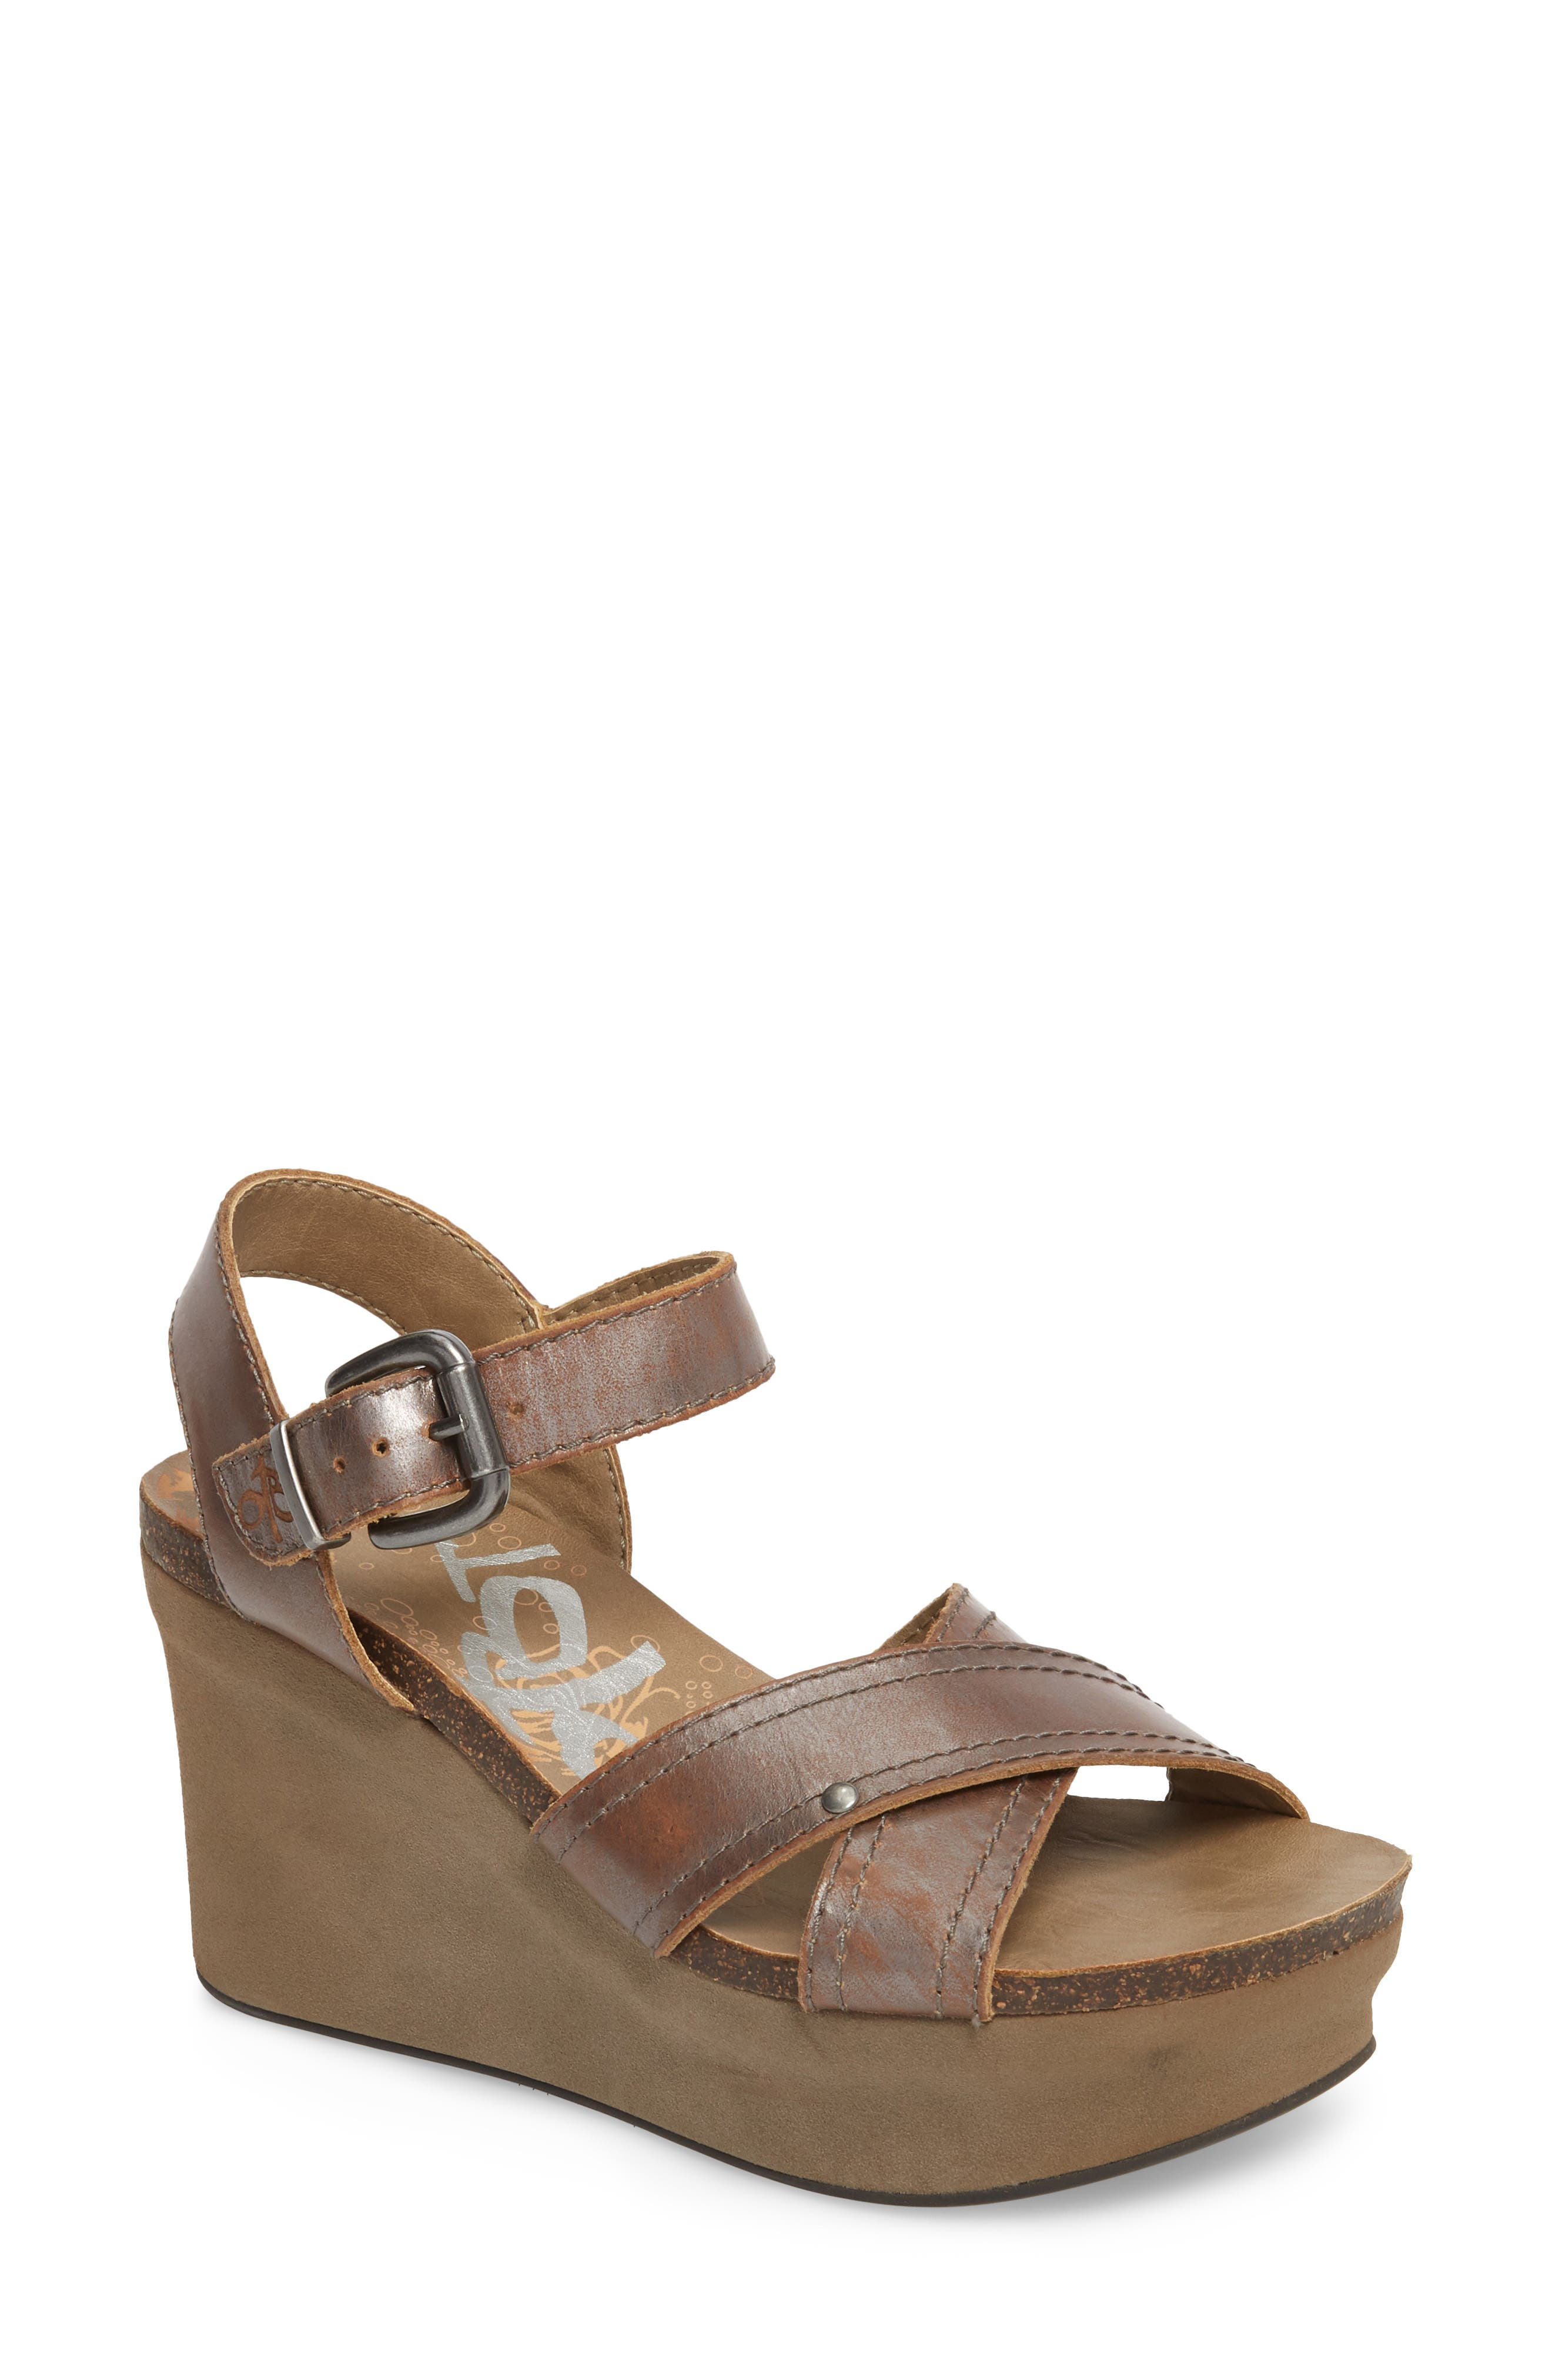 Bee Cave Wedge Sandal,                             Main thumbnail 1, color,                             Pewter Leather